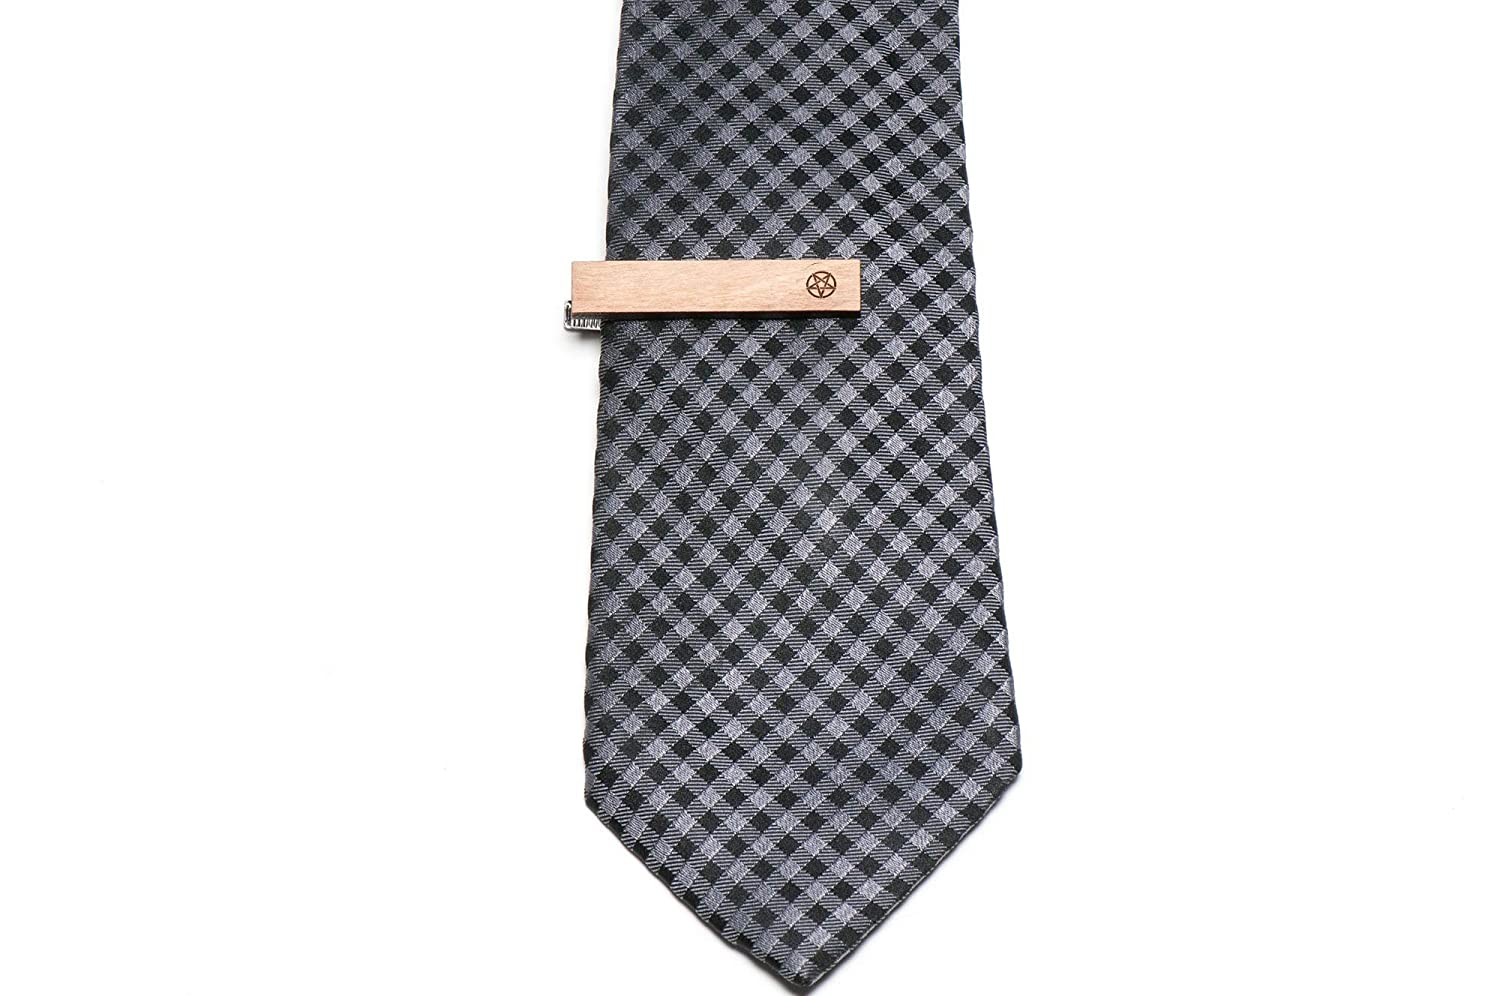 Wooden Accessories Company Wooden Tie Clips with Laser Engraved Satanism Design Cherry Wood Tie Bar Engraved in The USA